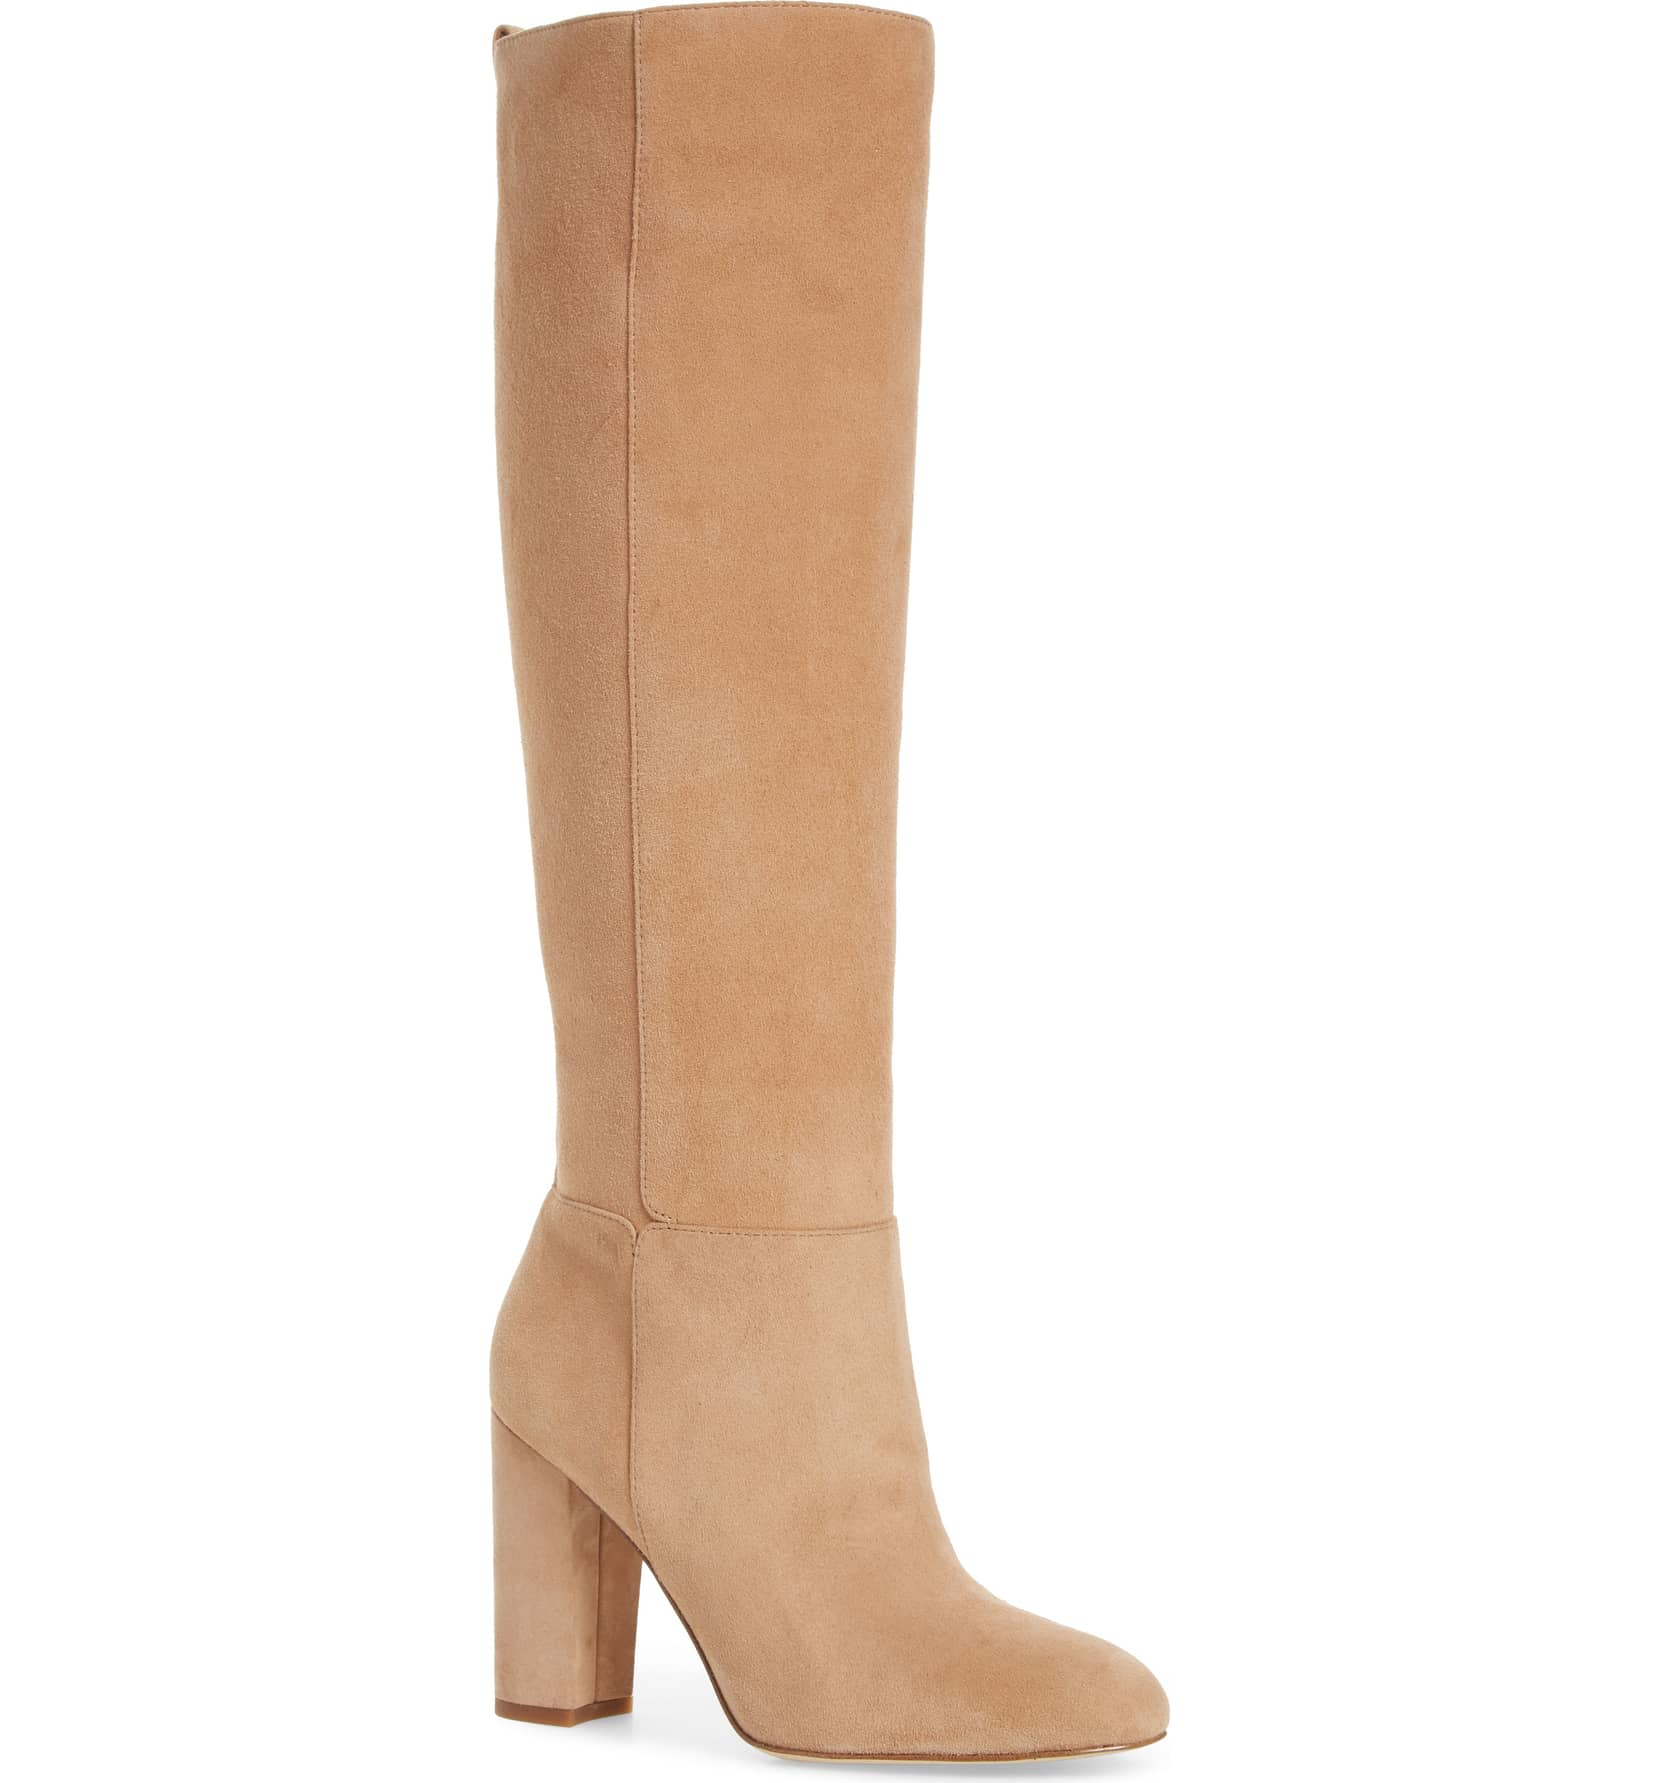 010b2e2d5b6b These Sam Edelman Boots Are on Sale   We Need Them in Every Color ...